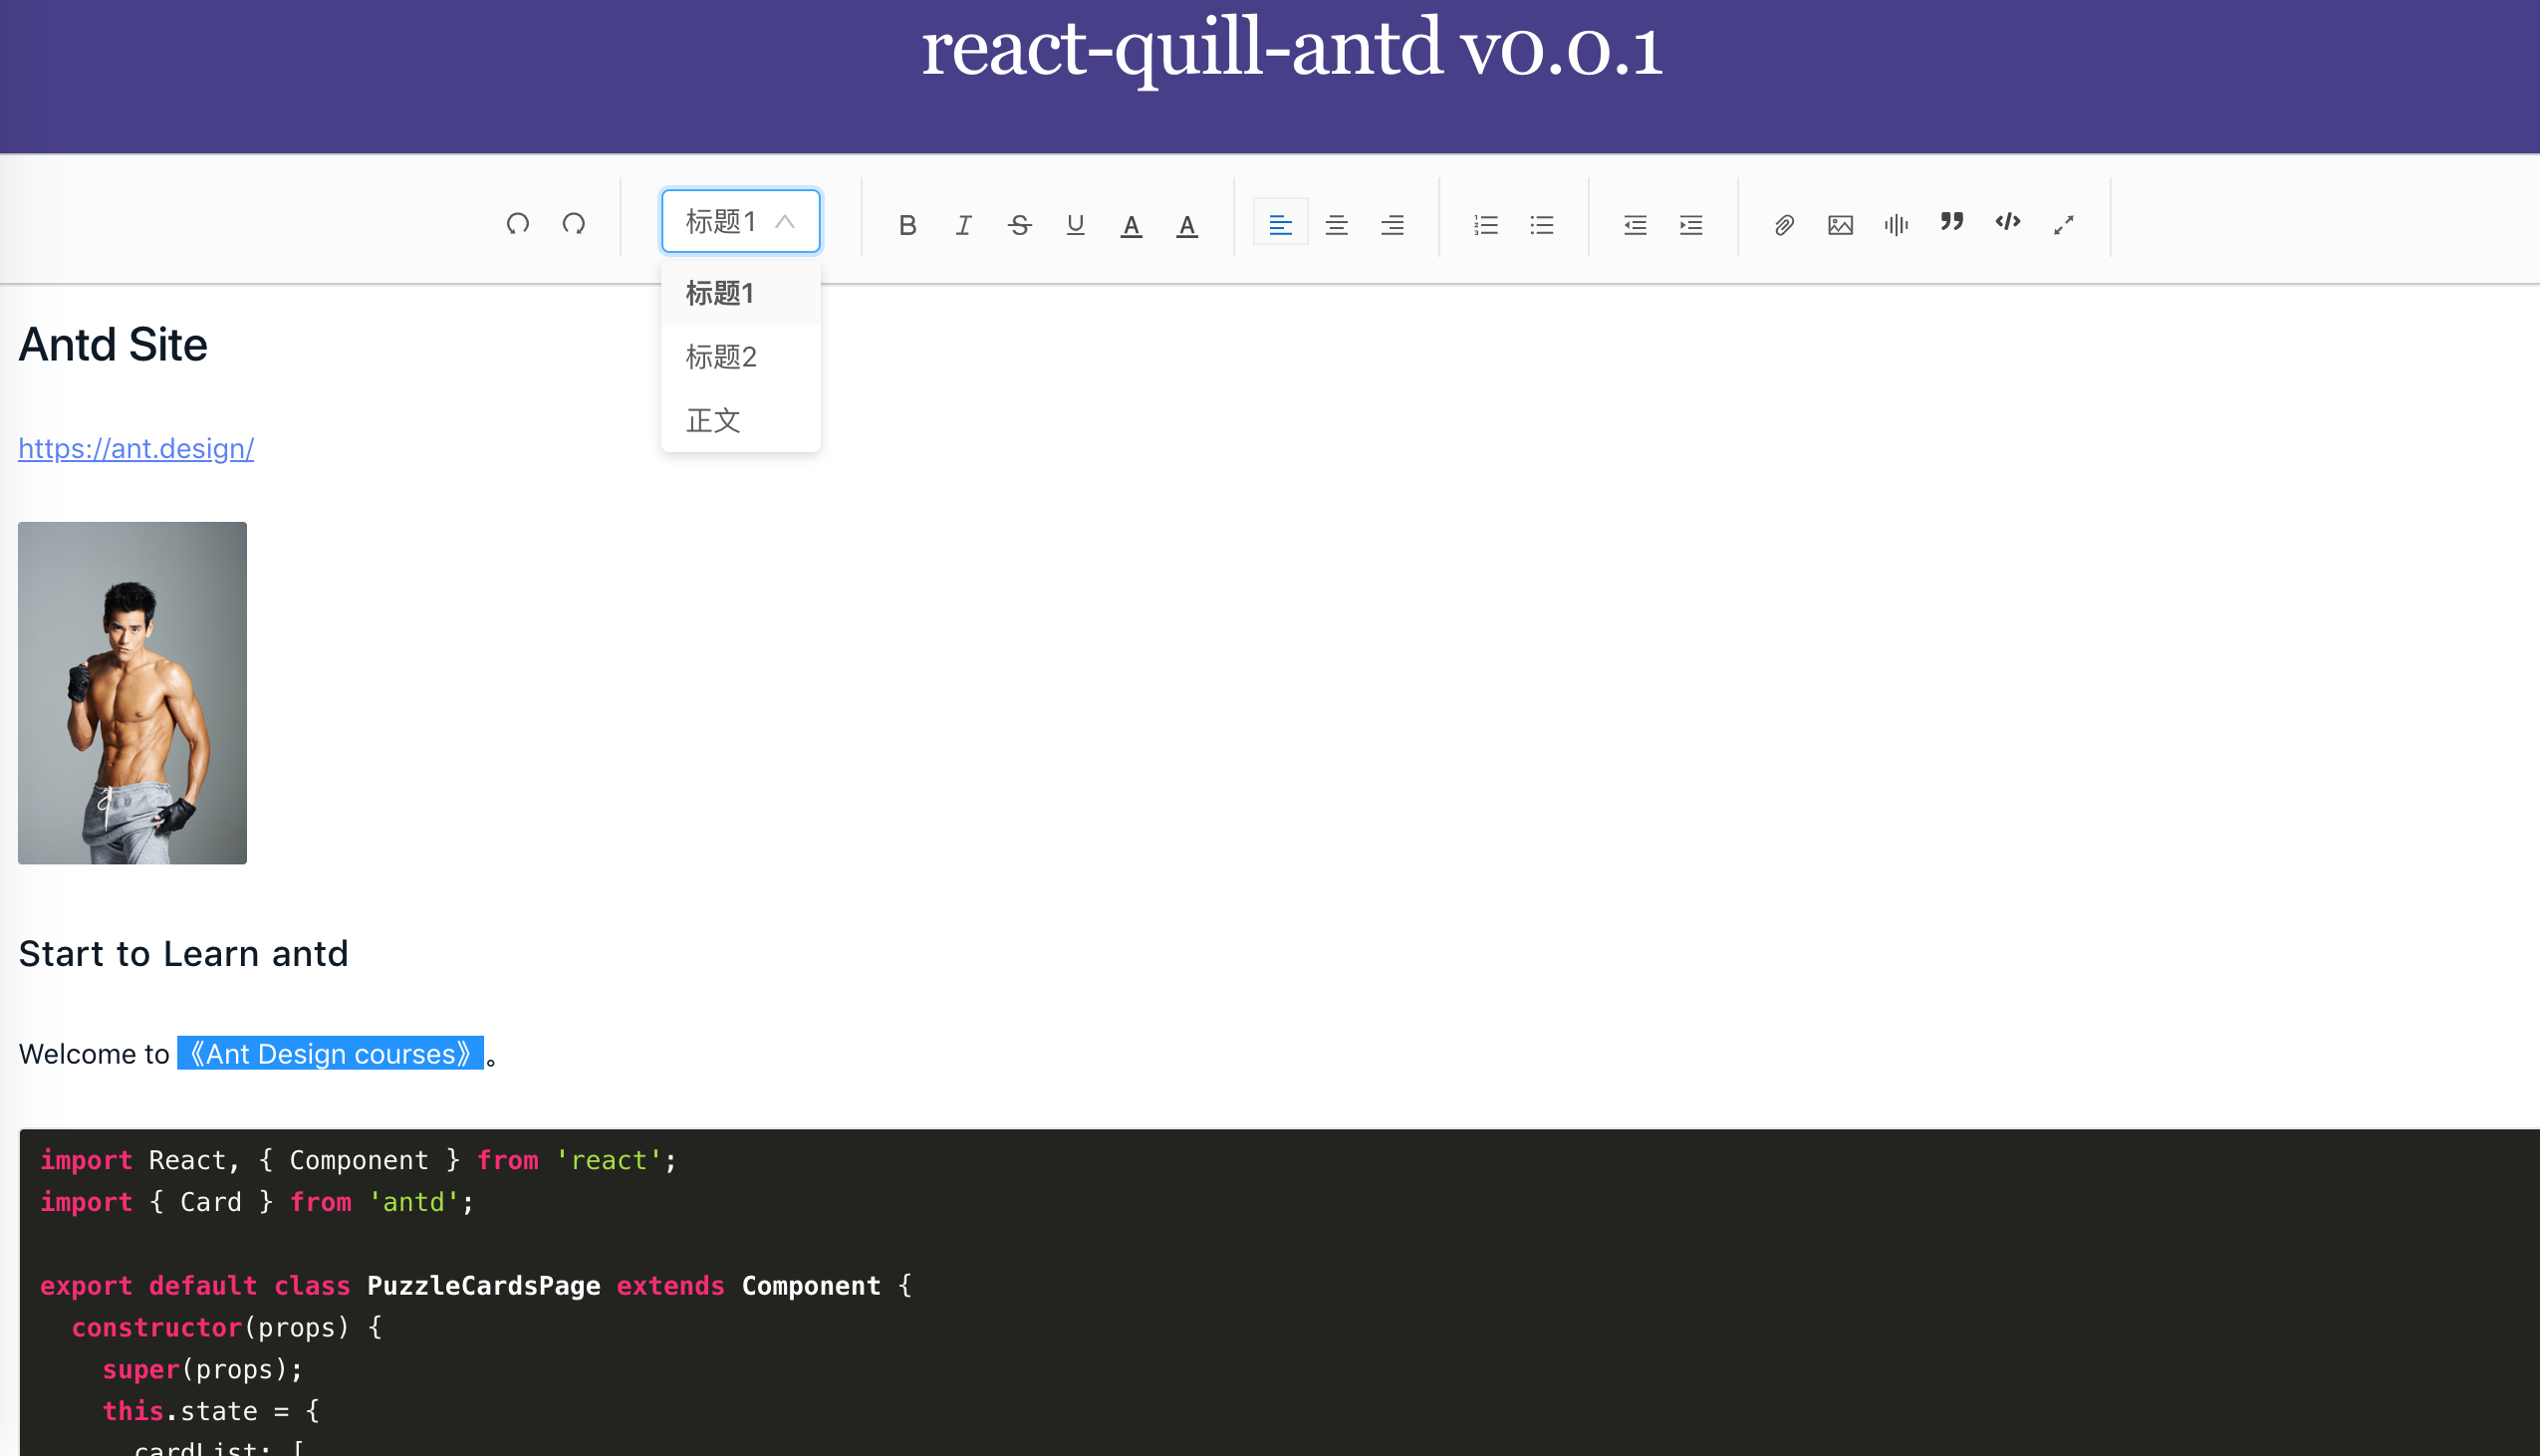 react-quill-antd 1 0 1-beta on npm - Libraries io